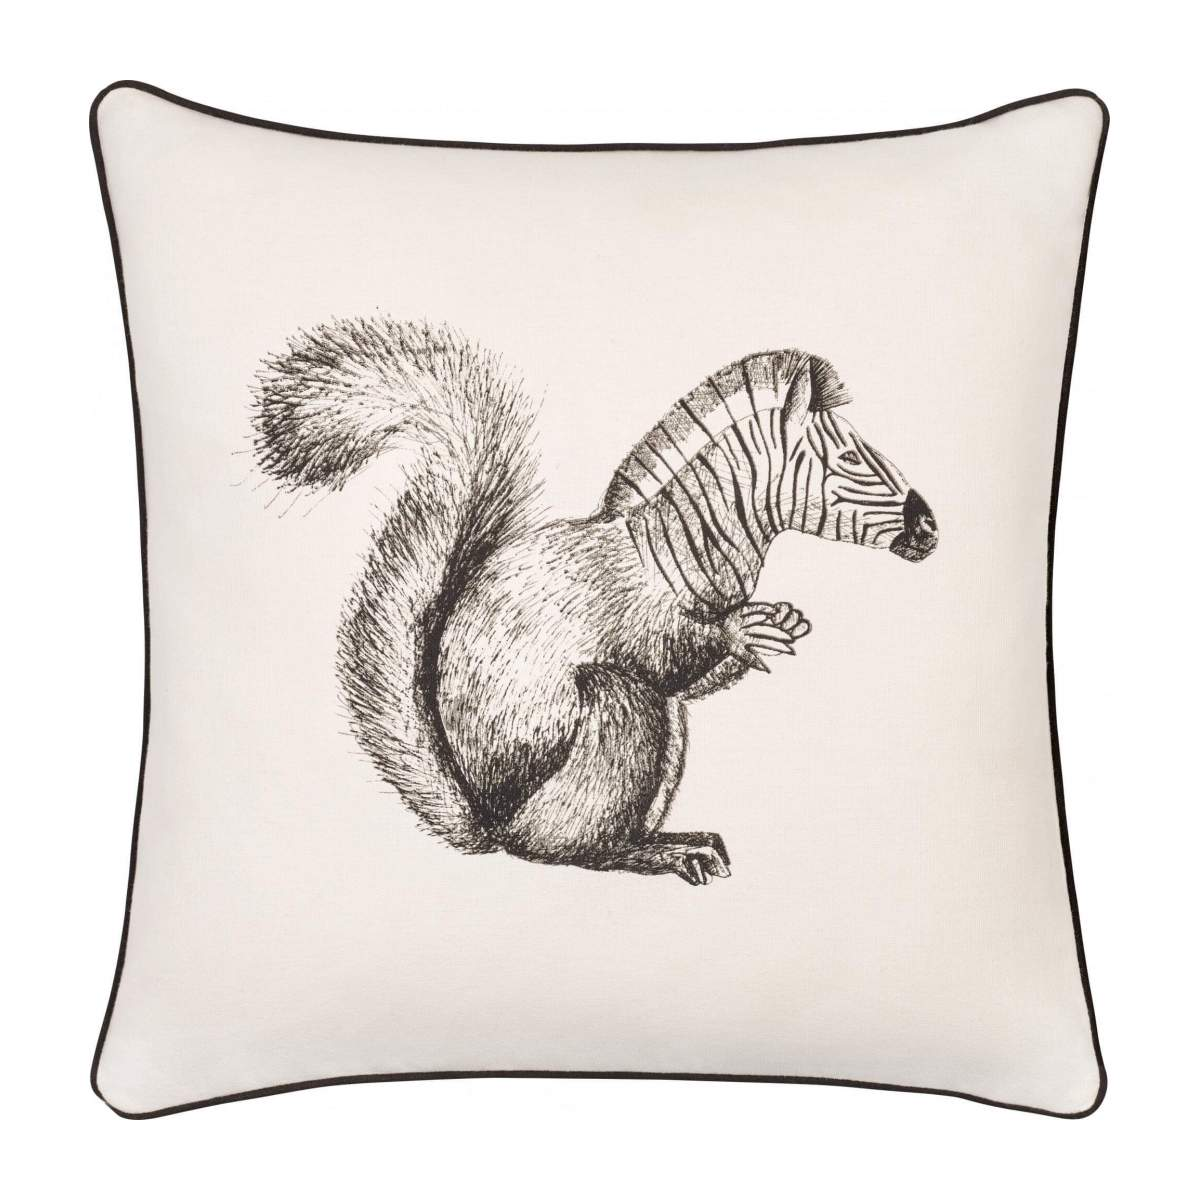 Squirrel Patterned Printed Cotton Cushion 40x40cm n°1